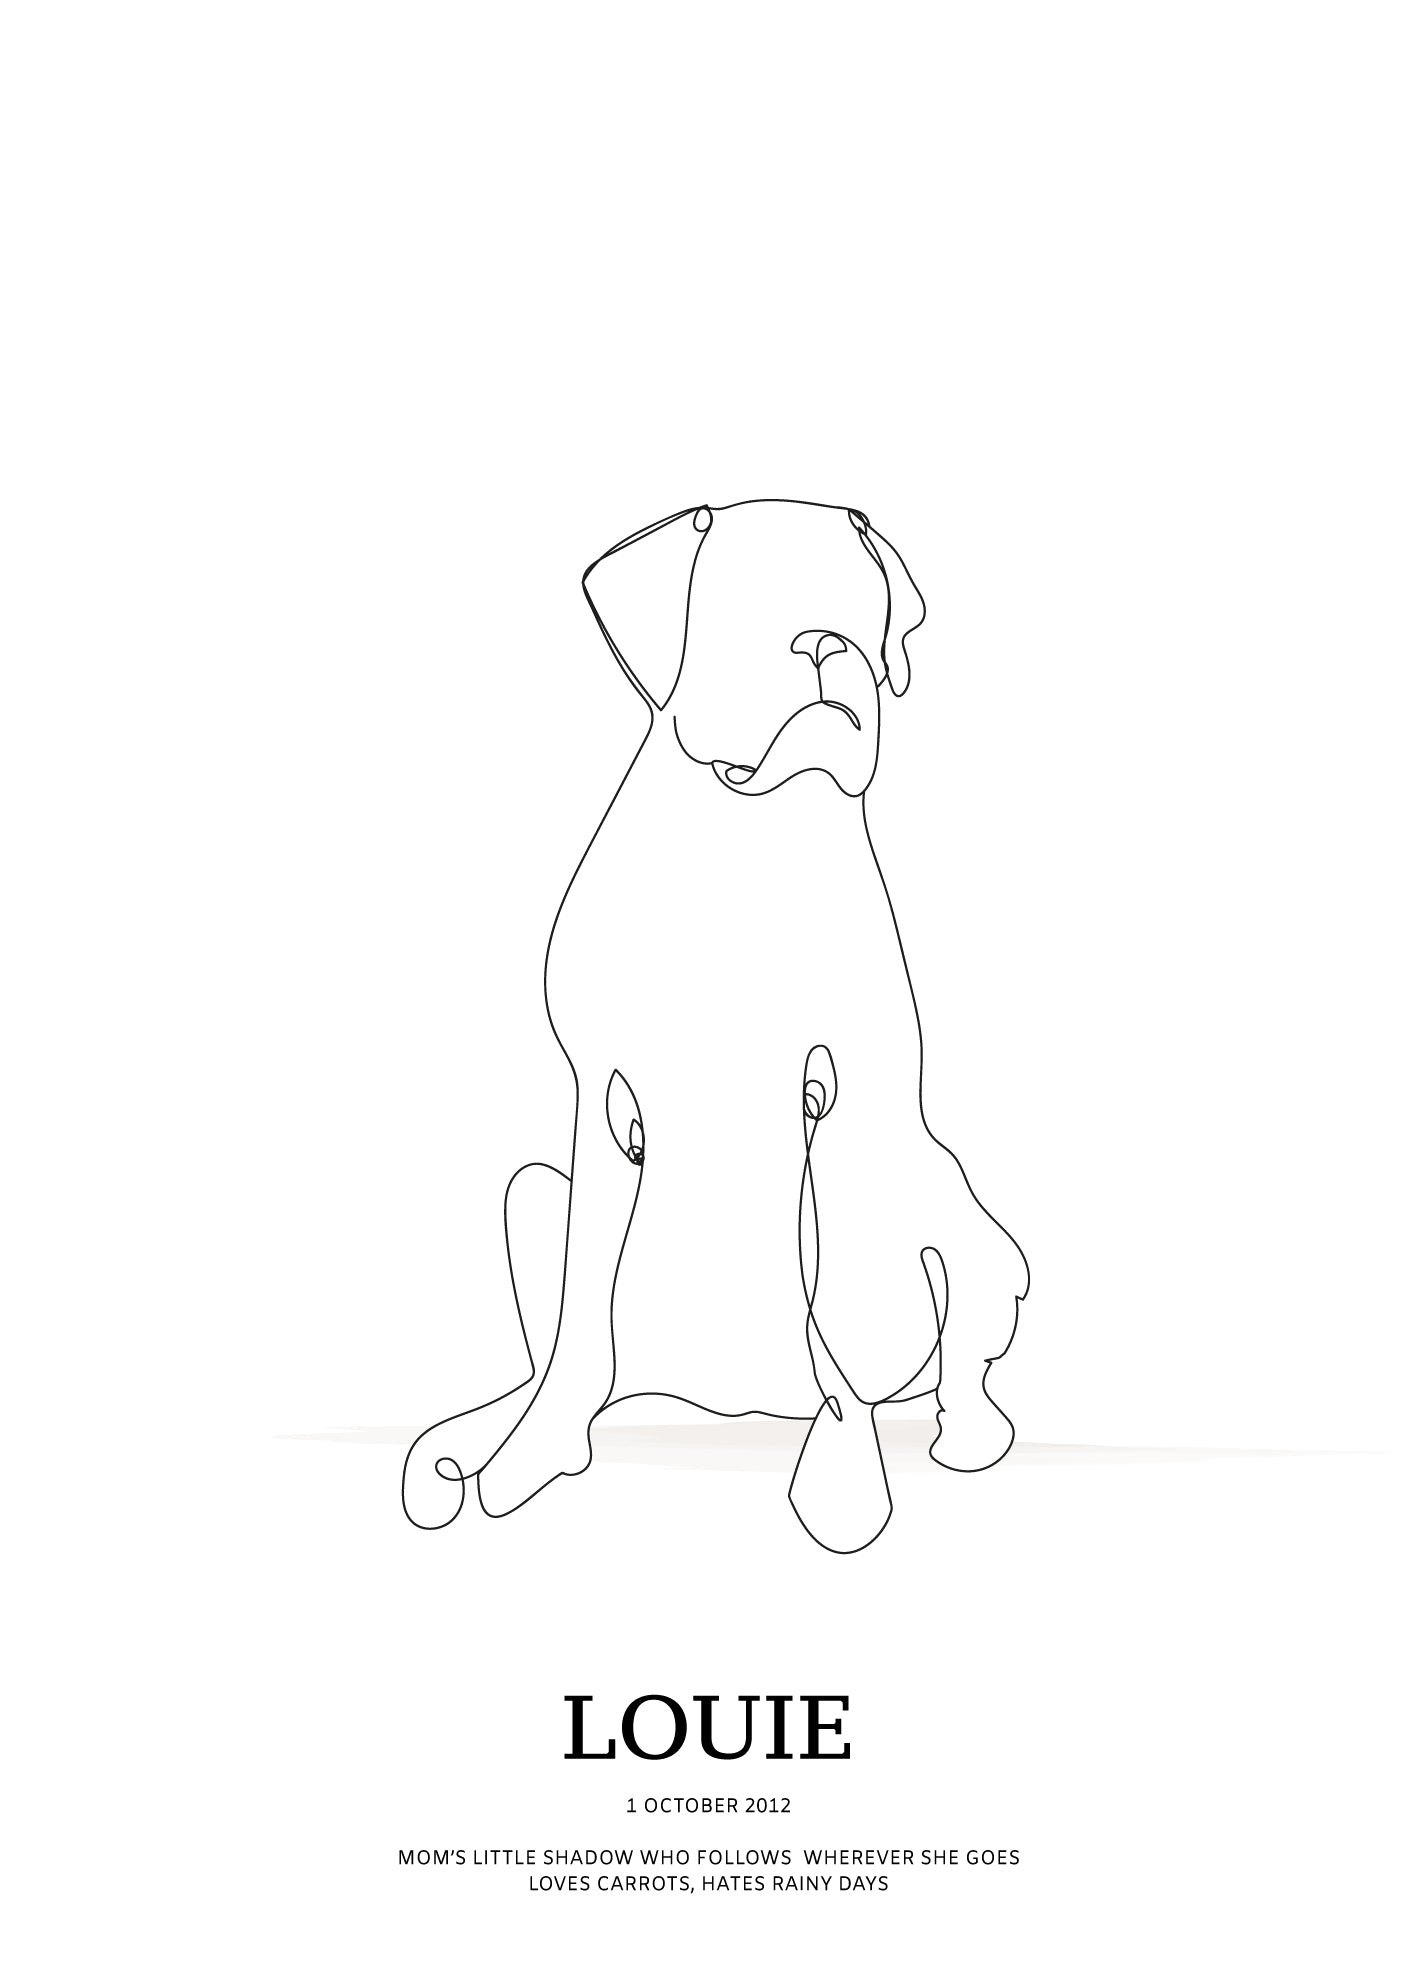 Boxer sitting (docked tail)